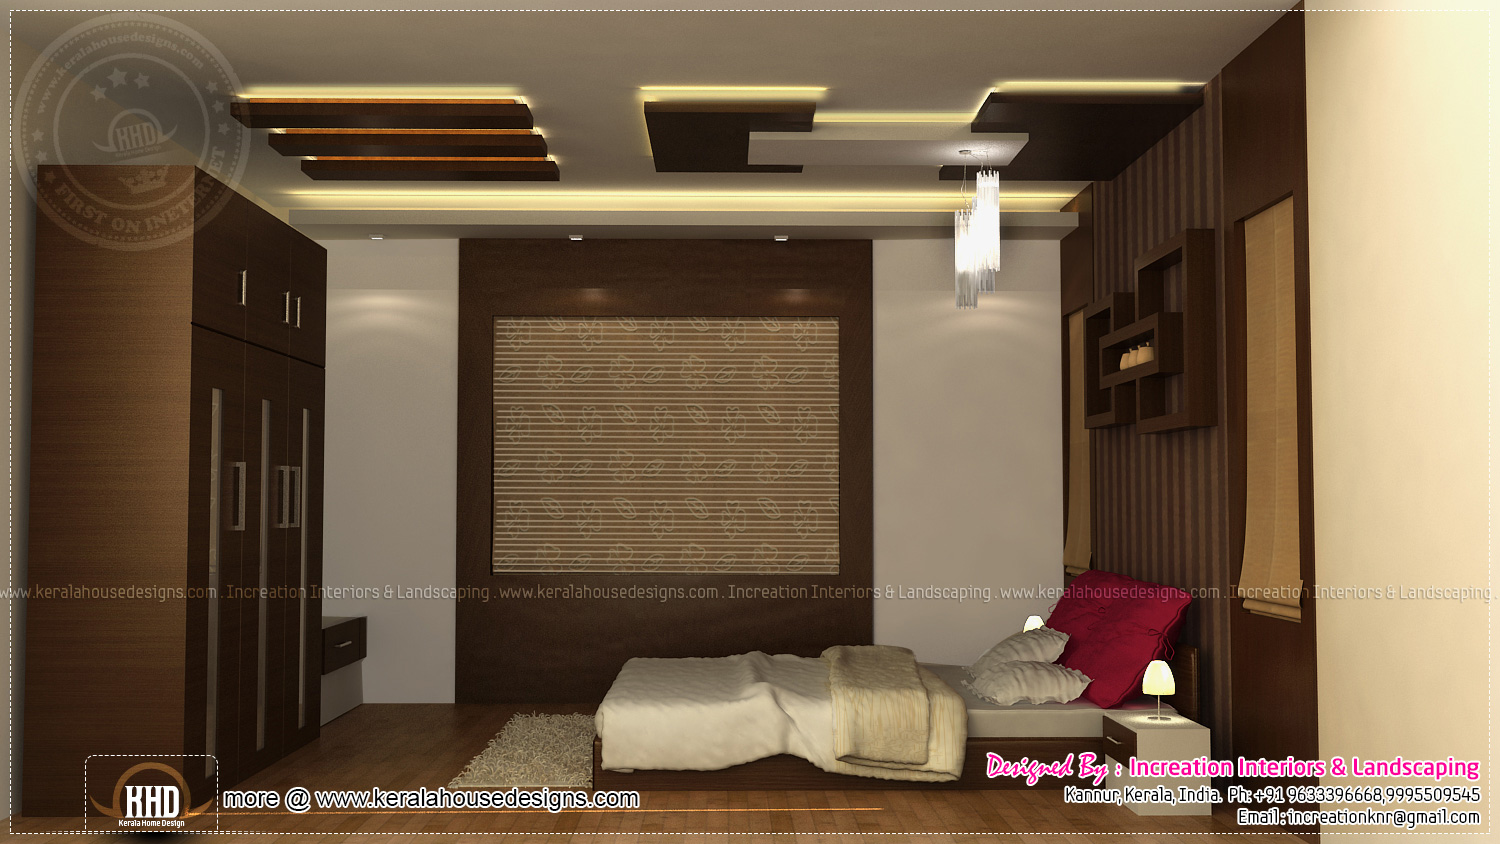 Interior designs by increation kannur kerala kerala for Home design picture gallery